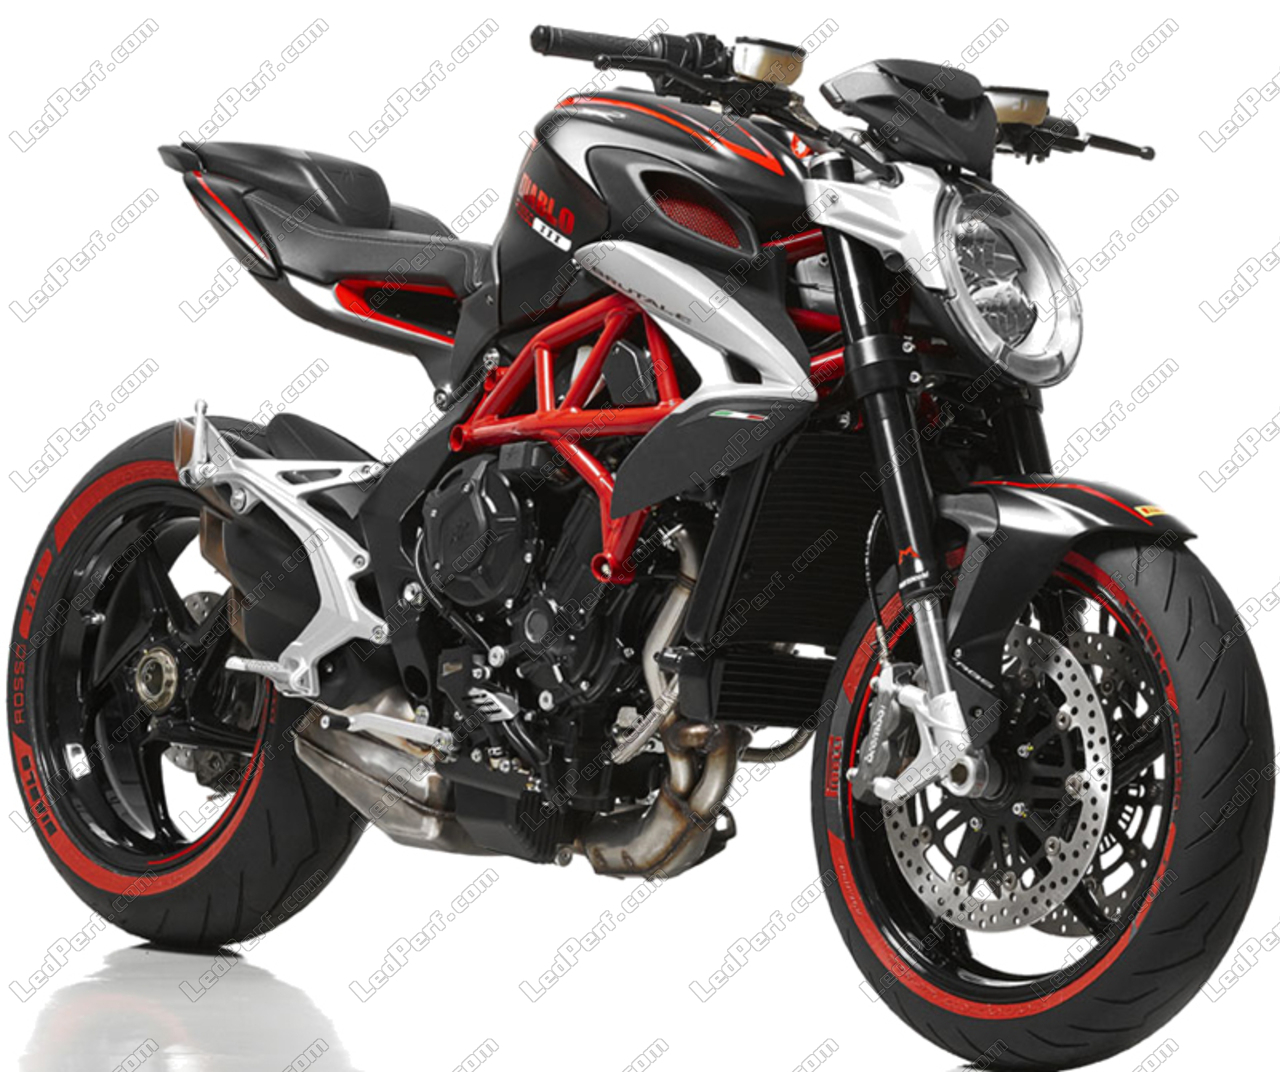 led bulbs for mv agusta brutale 800 2016 2018. Black Bedroom Furniture Sets. Home Design Ideas